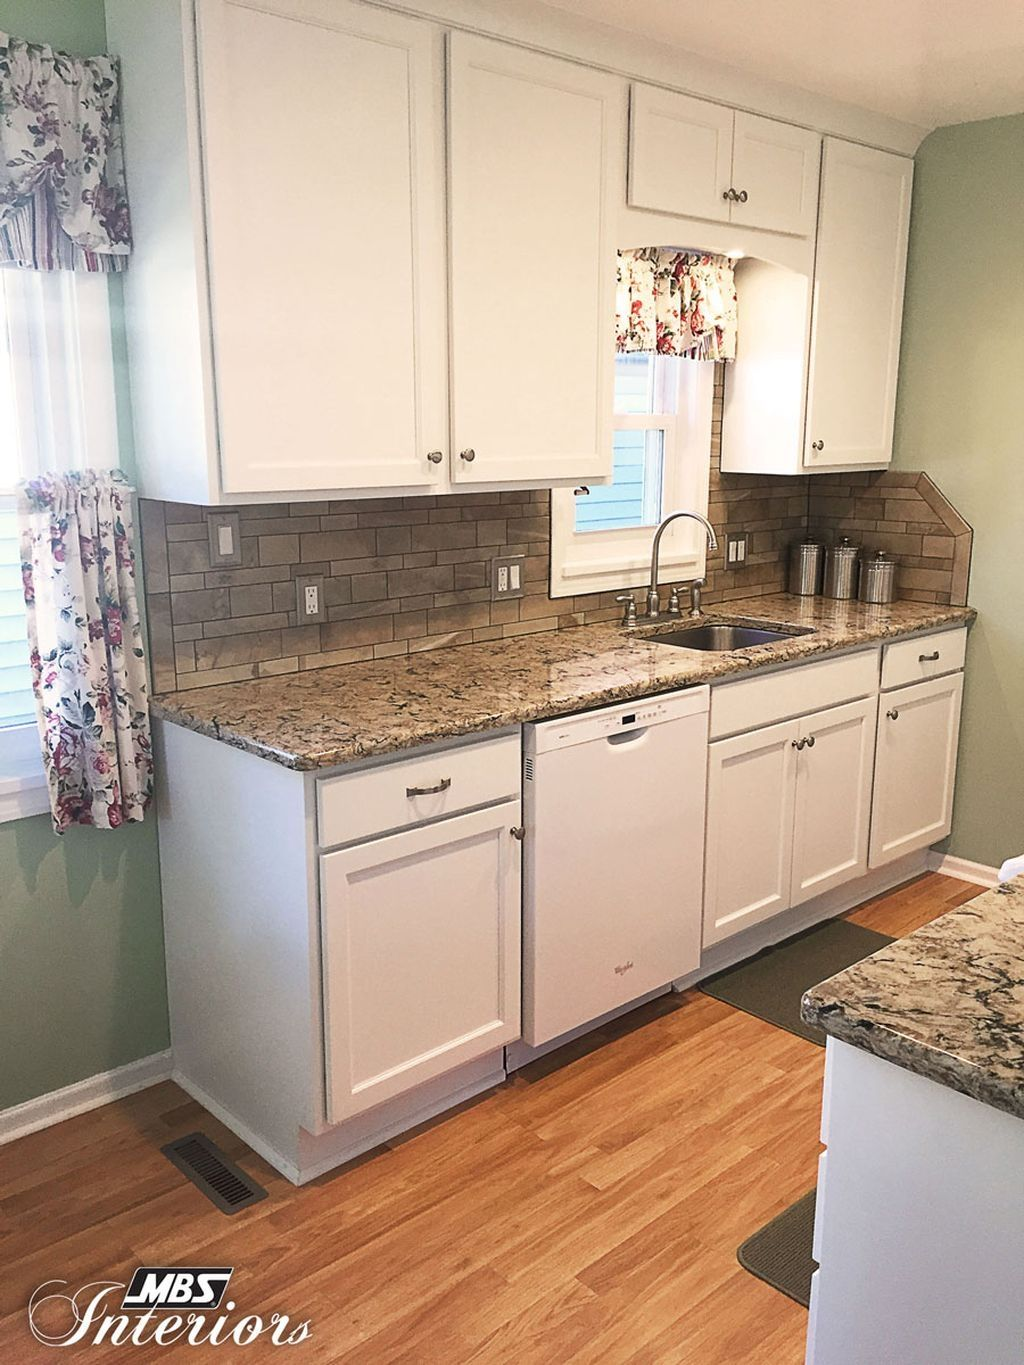 cheap table decor saleprice 39 kitchen remodel small galley kitchen design galley kitchen on kitchen remodel galley style id=43824